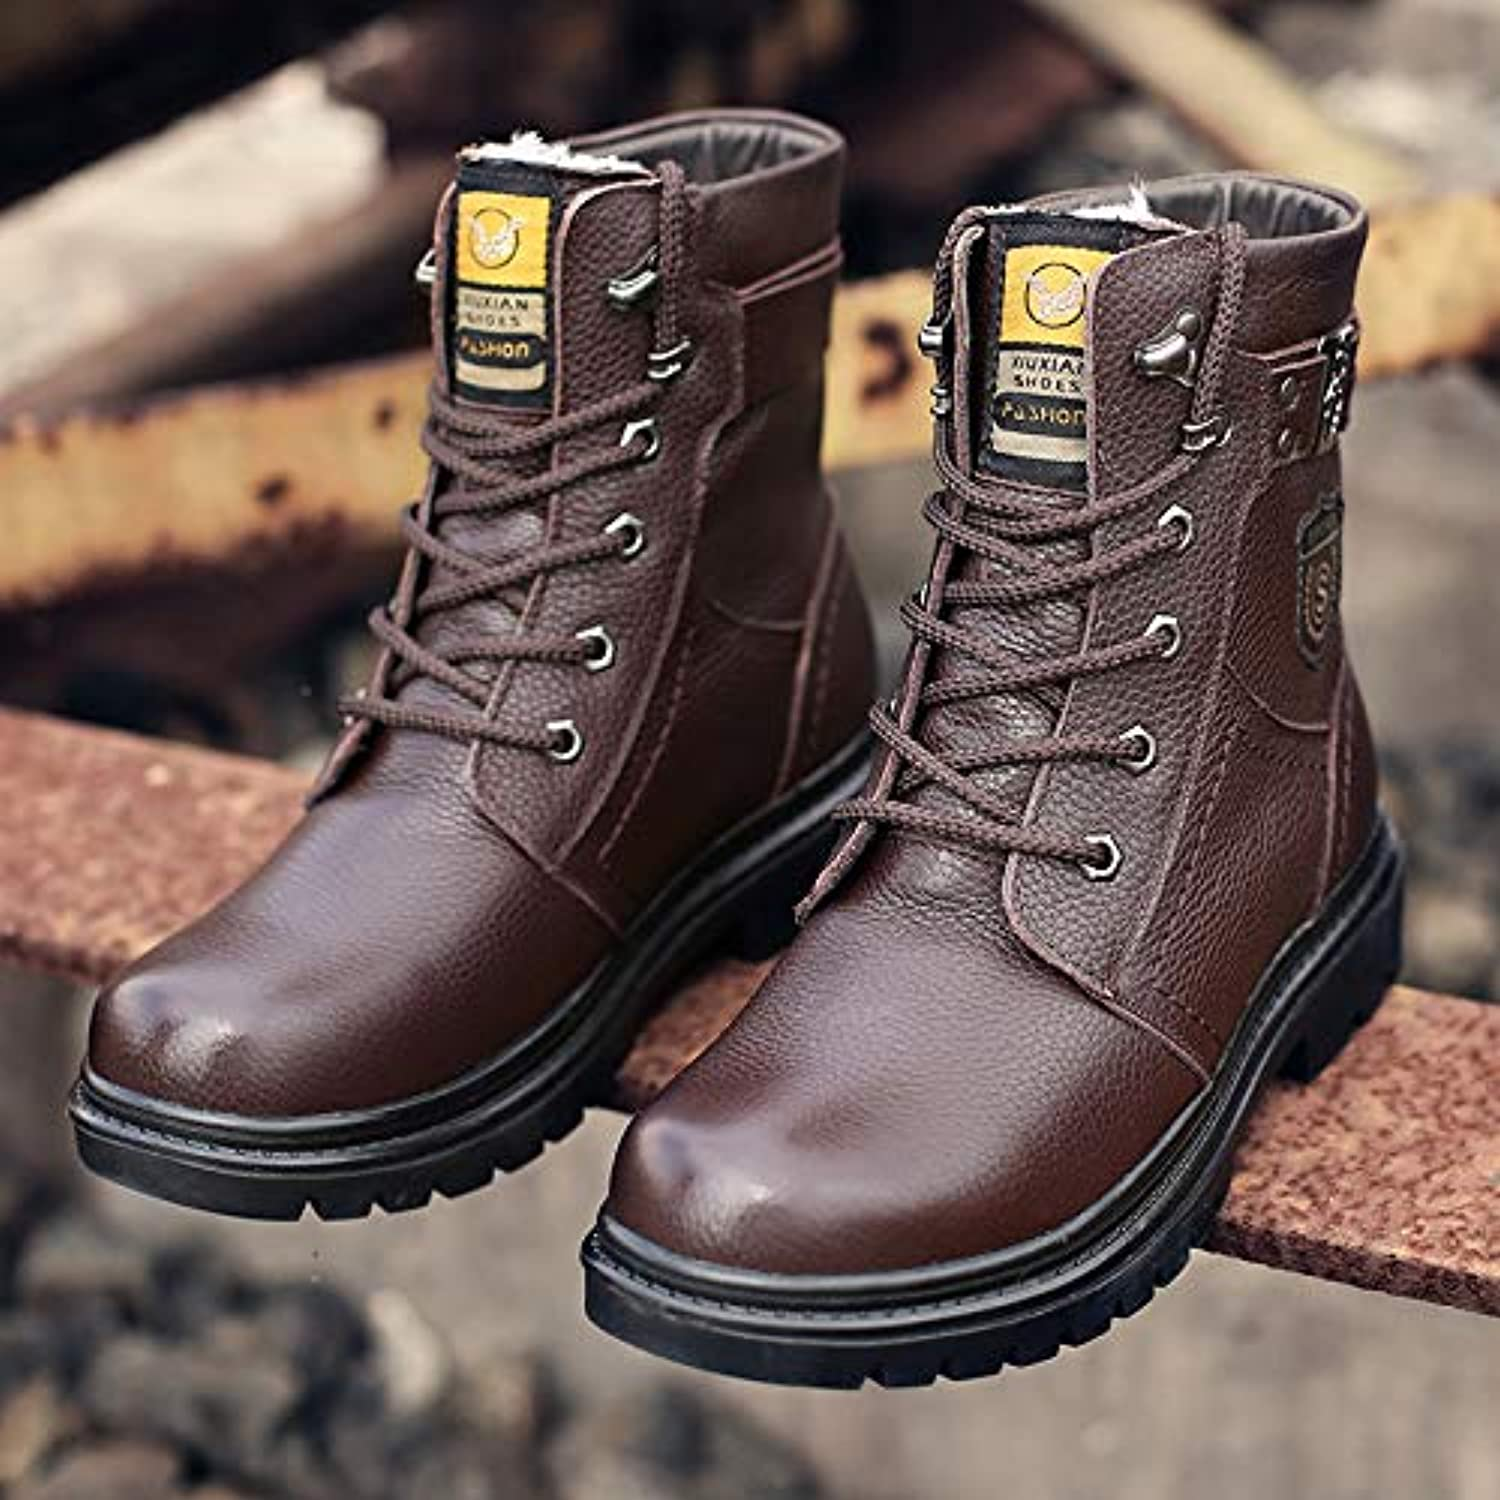 LOVDRAM Boots Men's Winter New Men'S Leather Martin Boots Men'S Commando Men'S Boots Men'S Leather Boots High Boots